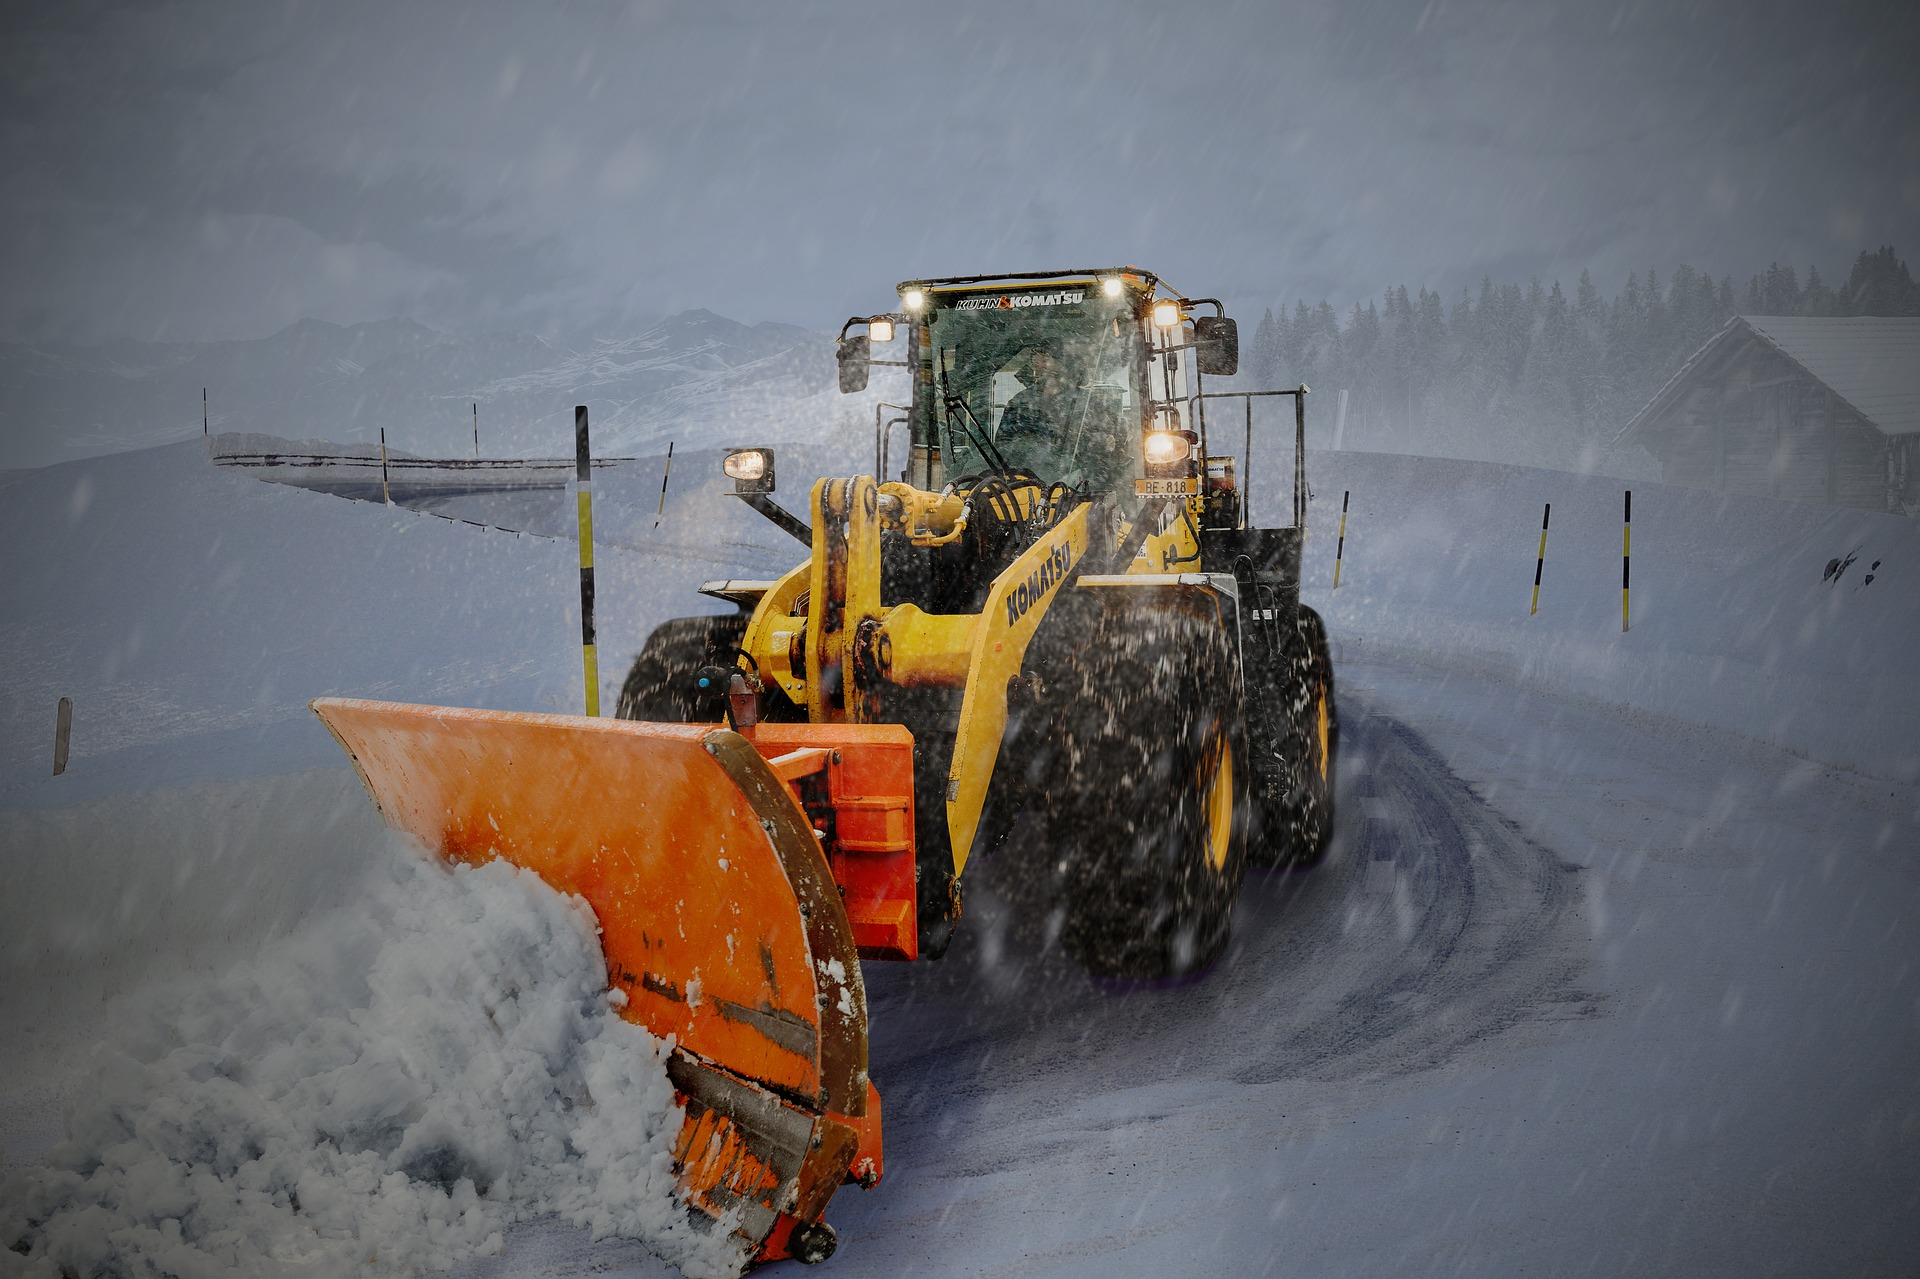 snow removal equipment with lights